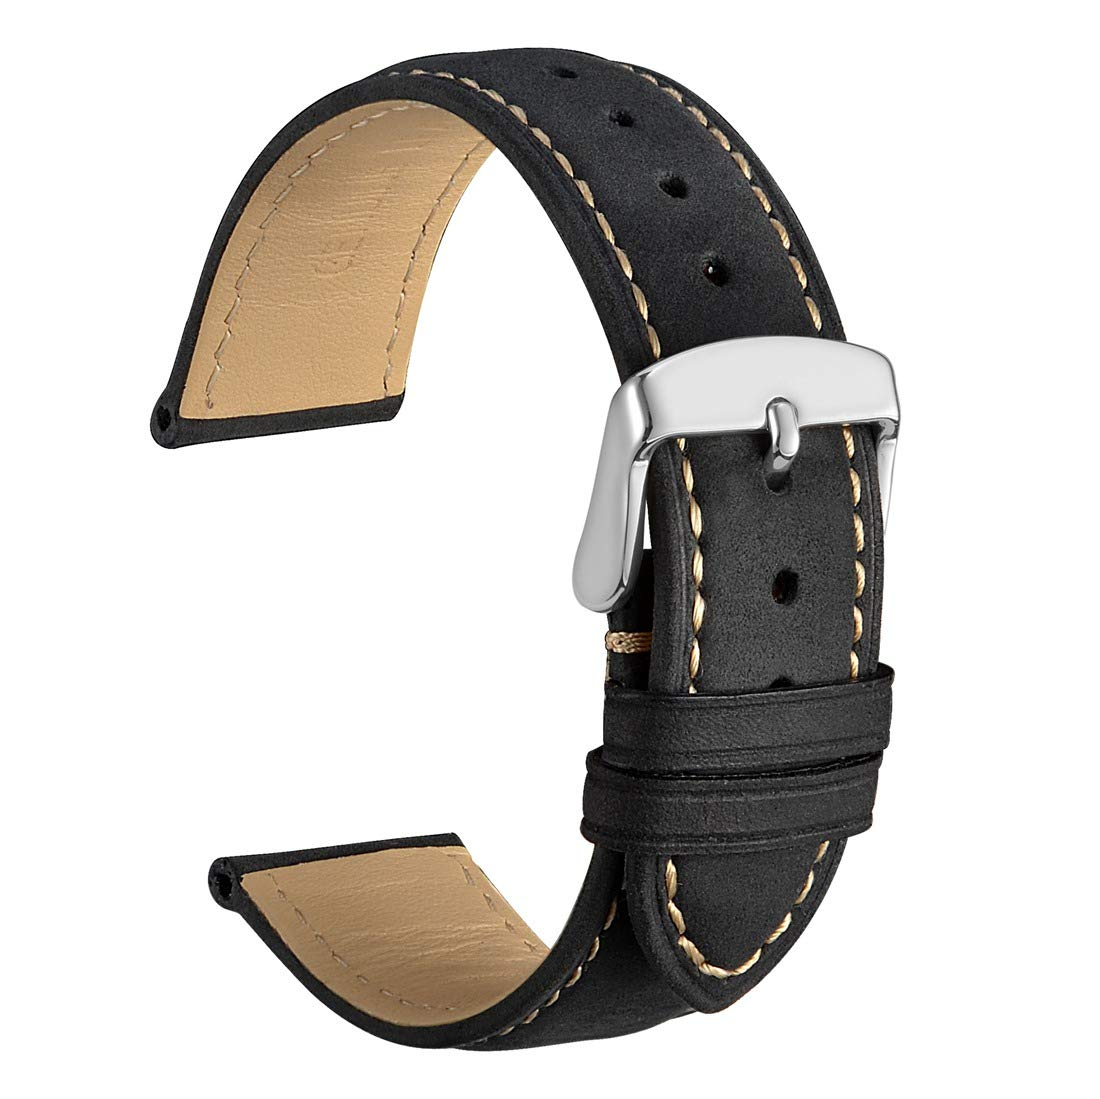 WOCCI Watch Band Vintage Leather Watch Strap 14mm 16mm 18mm 19mm 20mm 21mm 22mm 23mm 24mm Choice of Color and Width